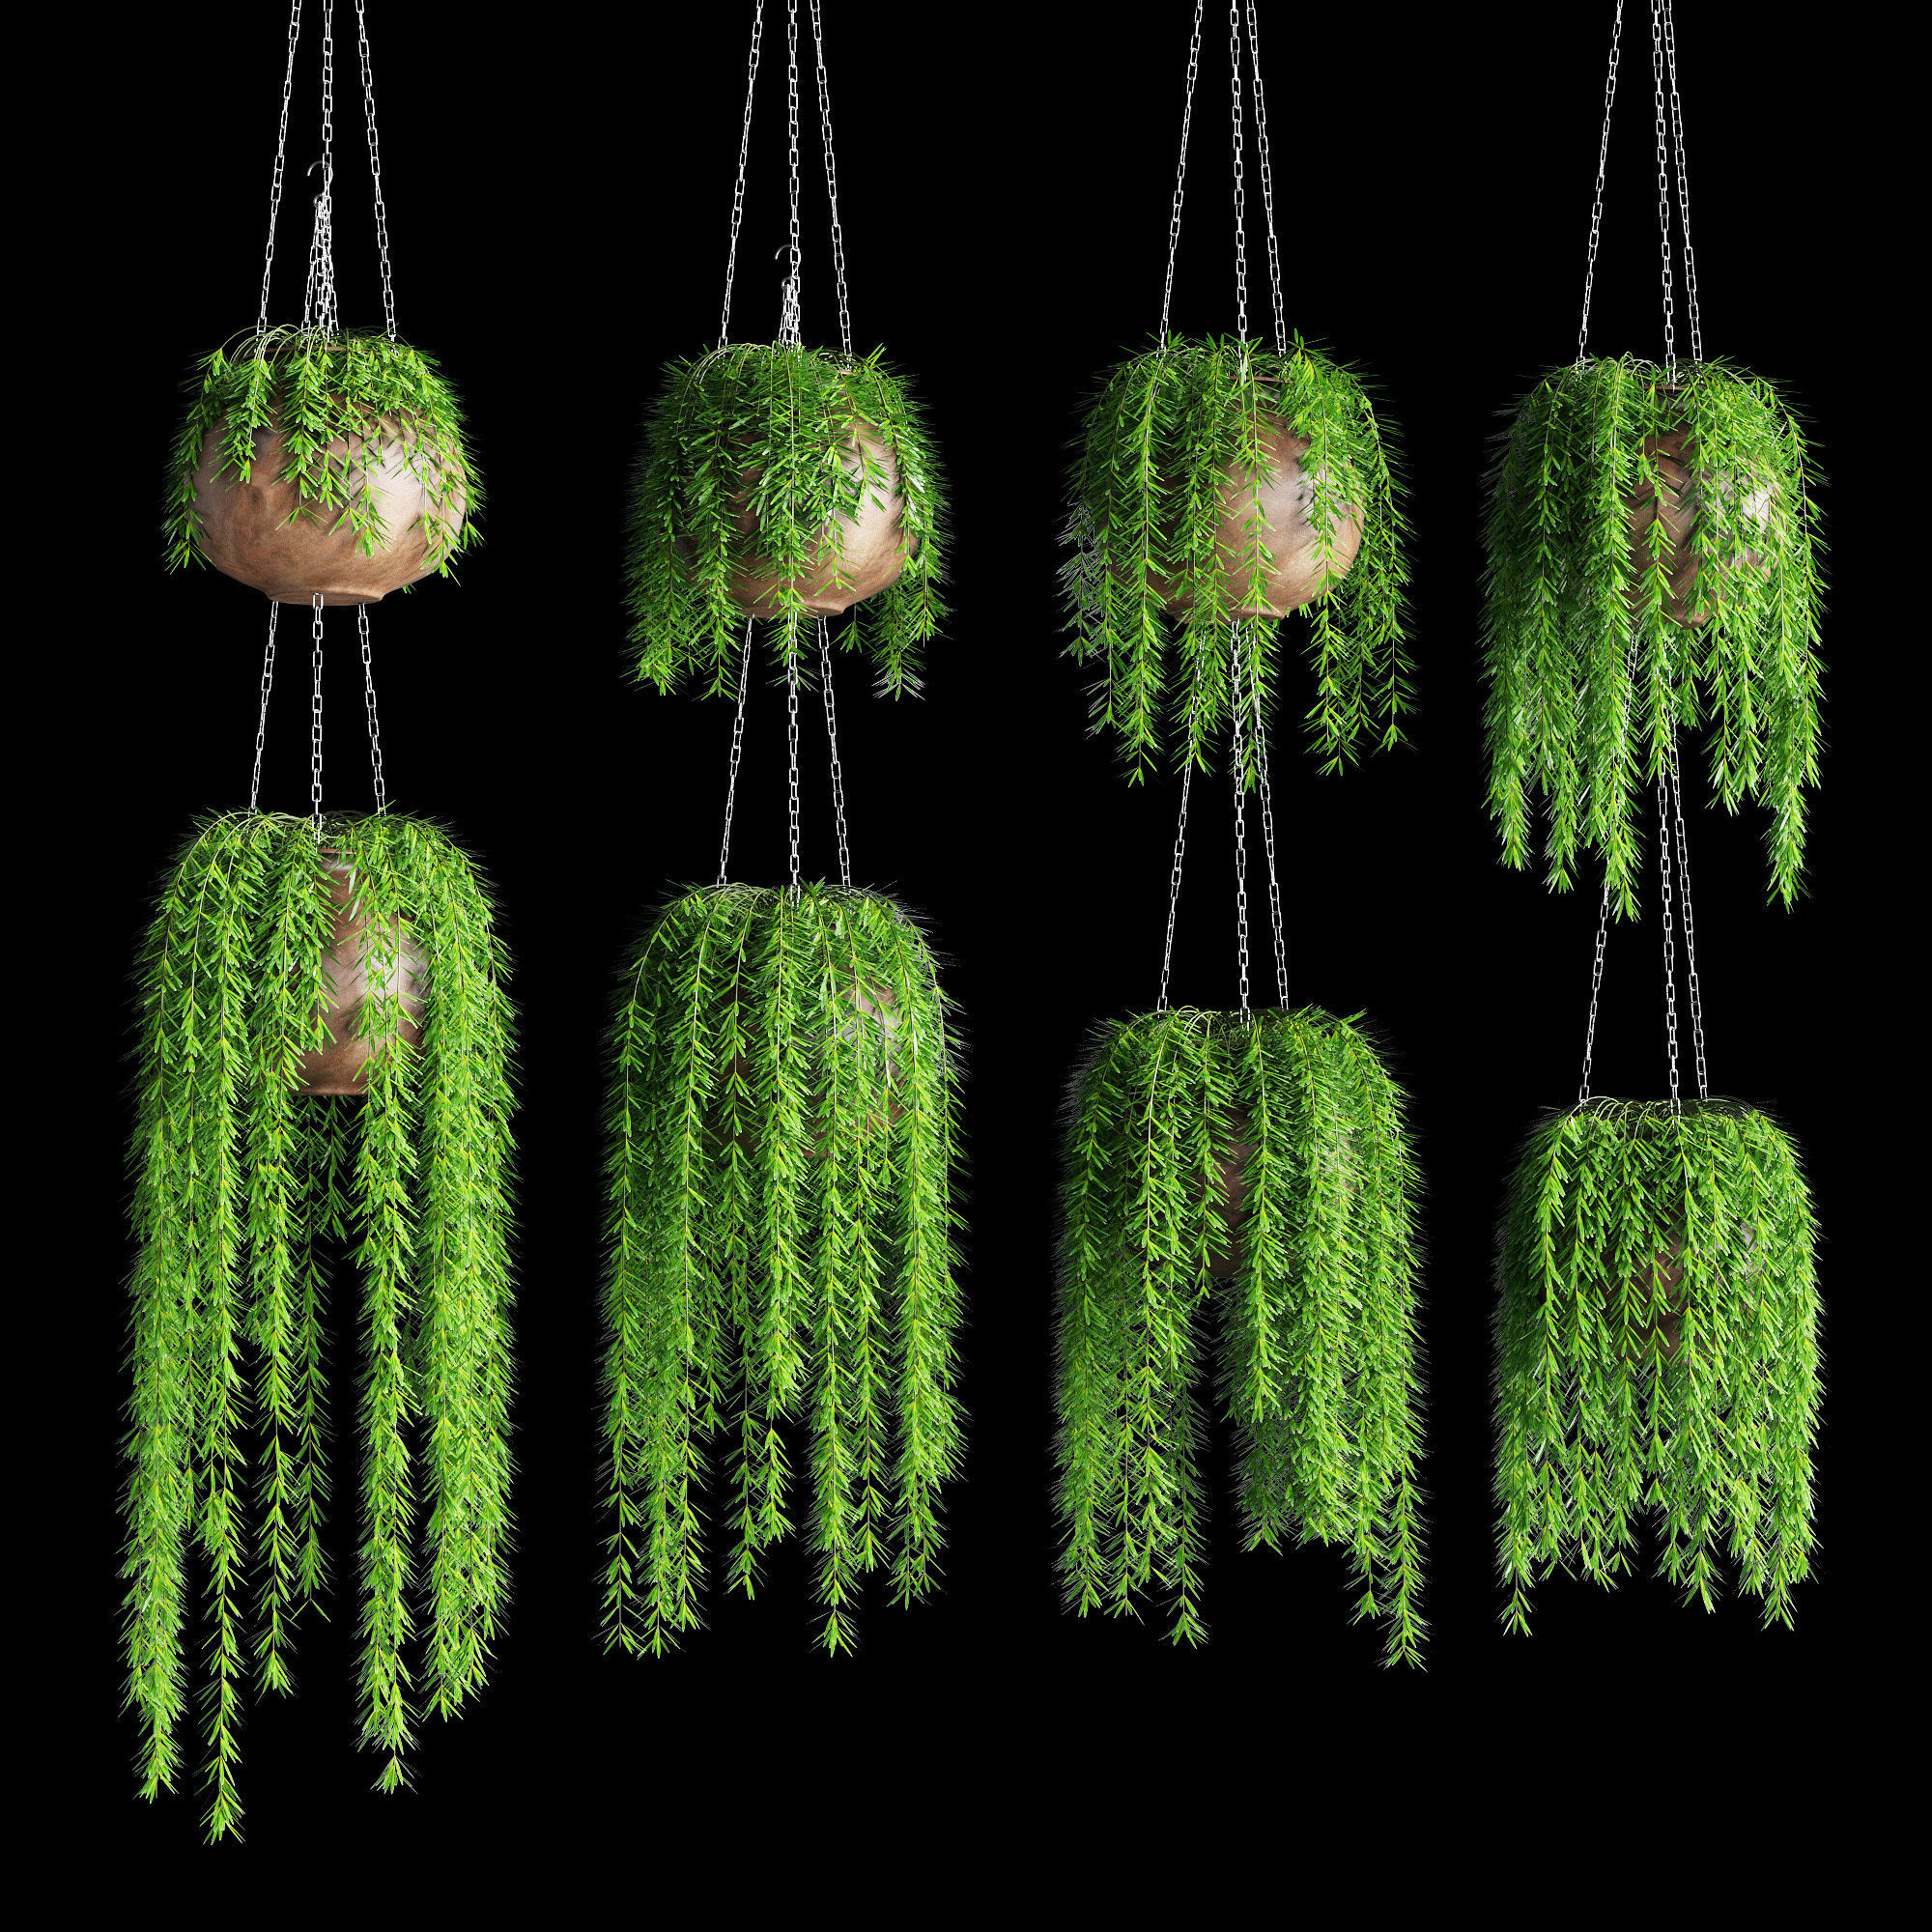 Hanging plants in pots on a chain 8 models